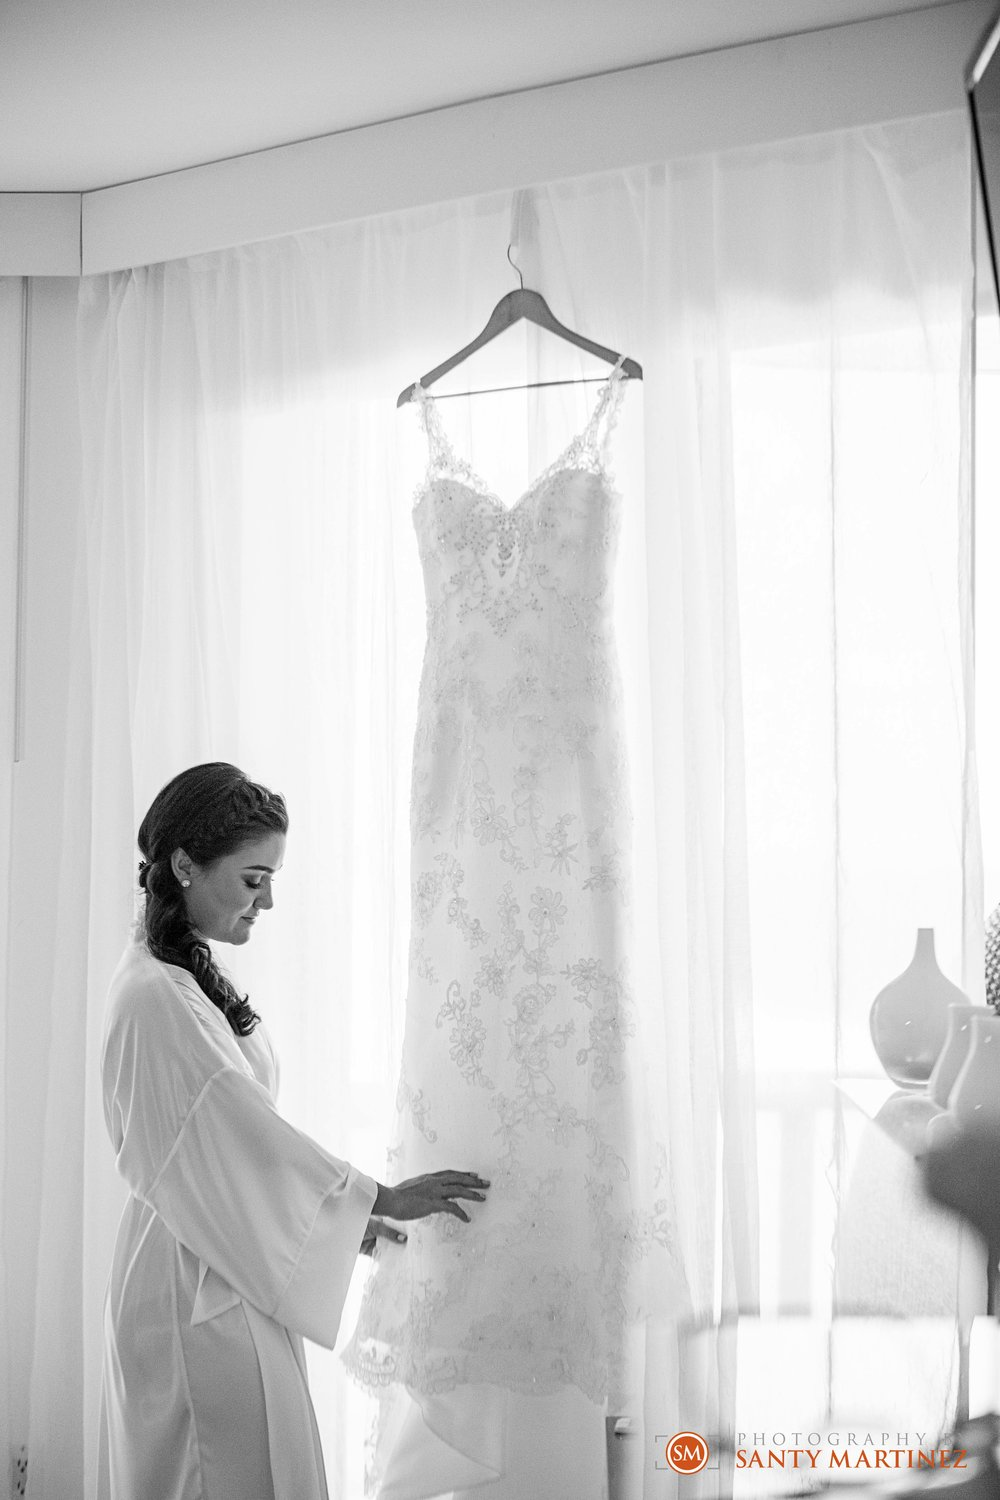 Miami Wedding Photographer - Santy Martinez -4.jpg